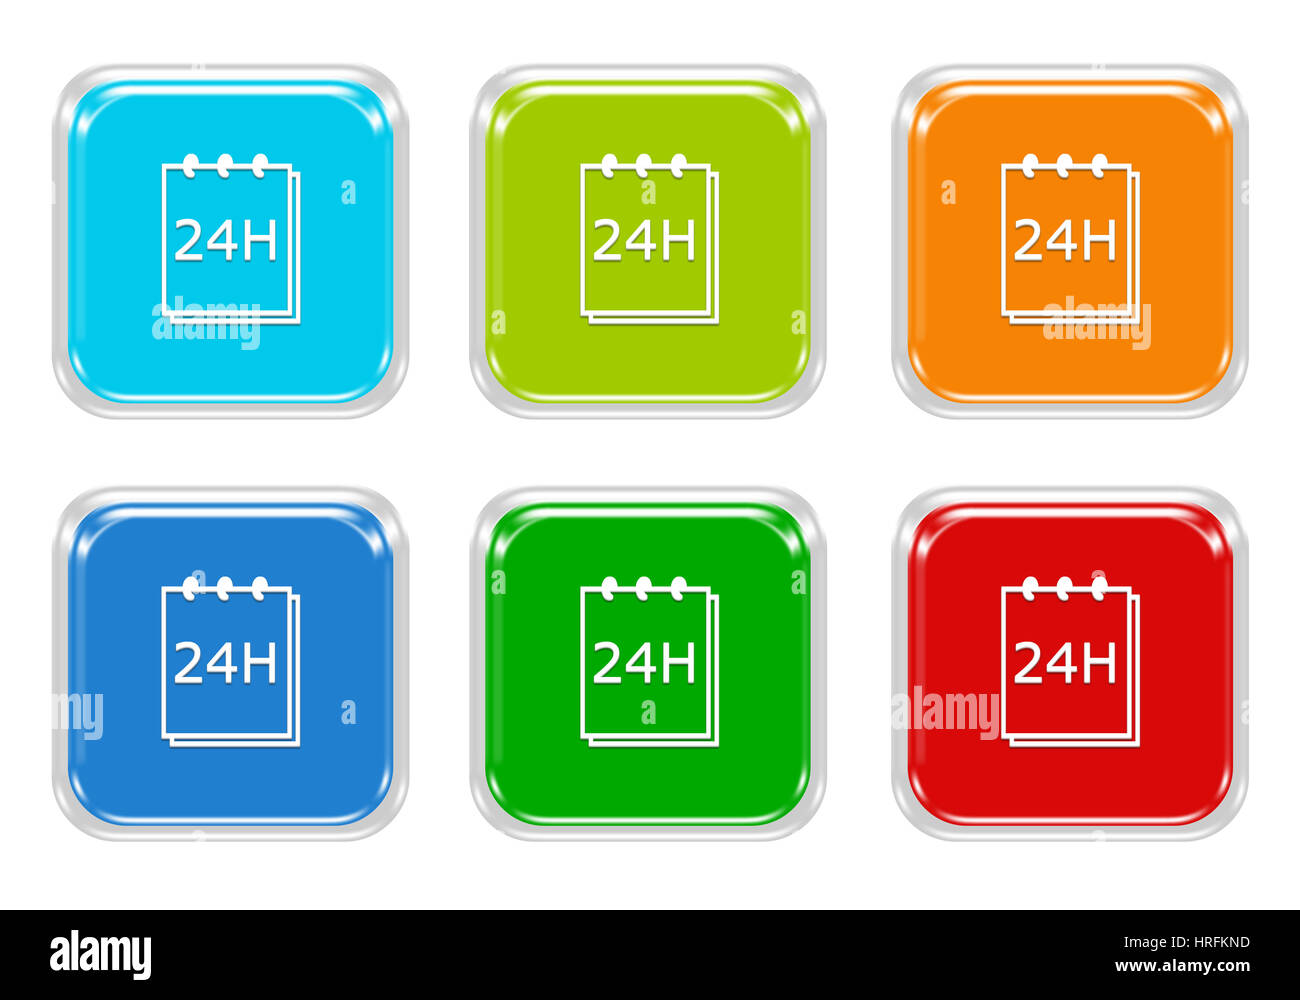 Set Of Squared Colorful Buttons With Notepad 24 Hours Support Symbol